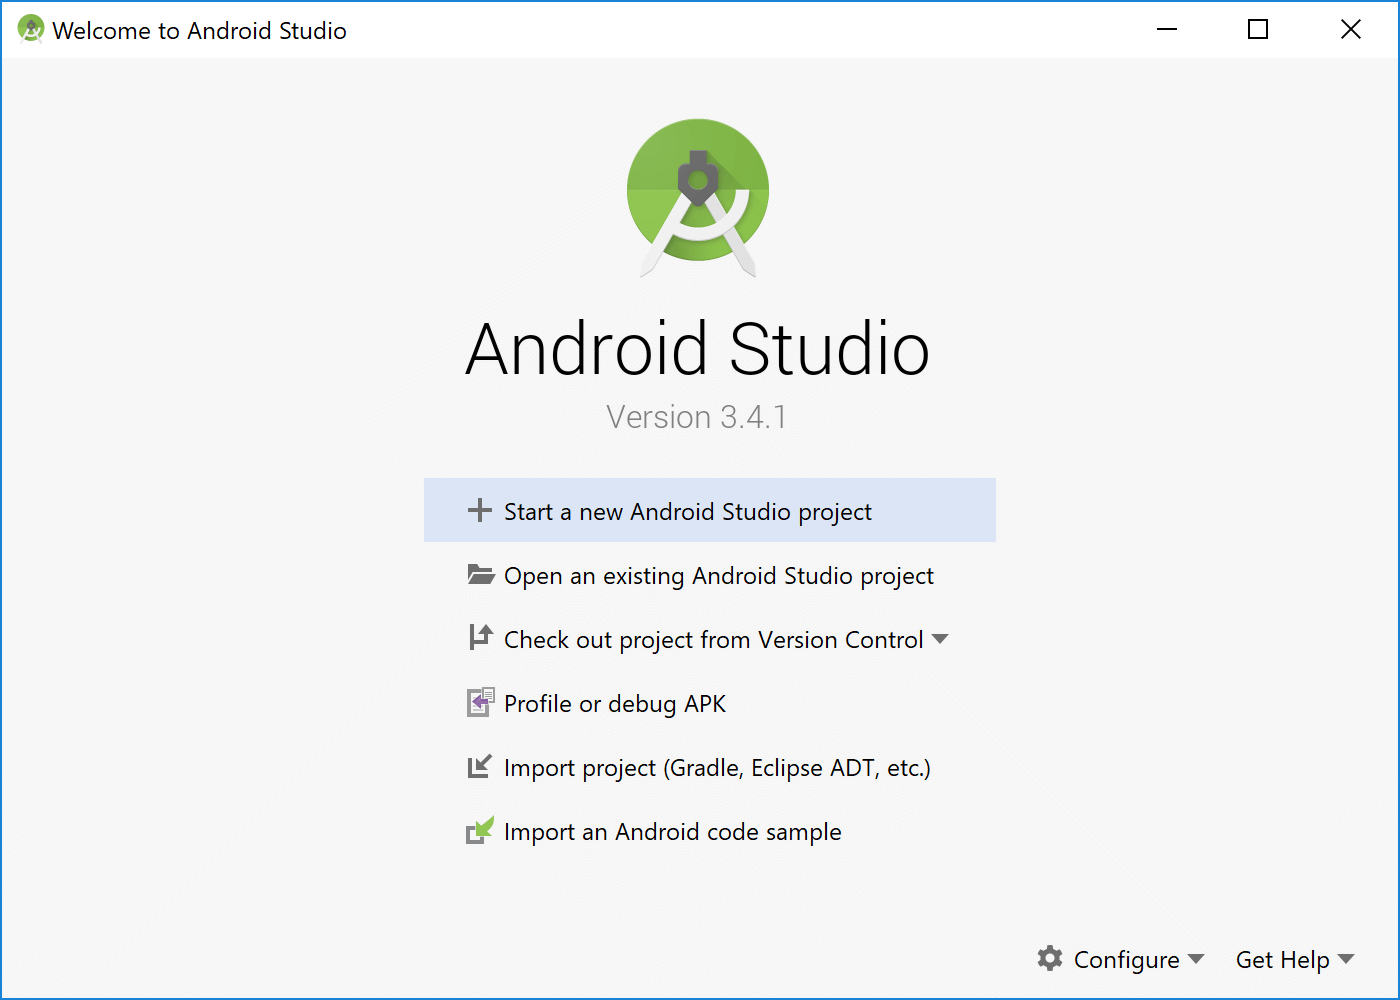 android_studio_welcome